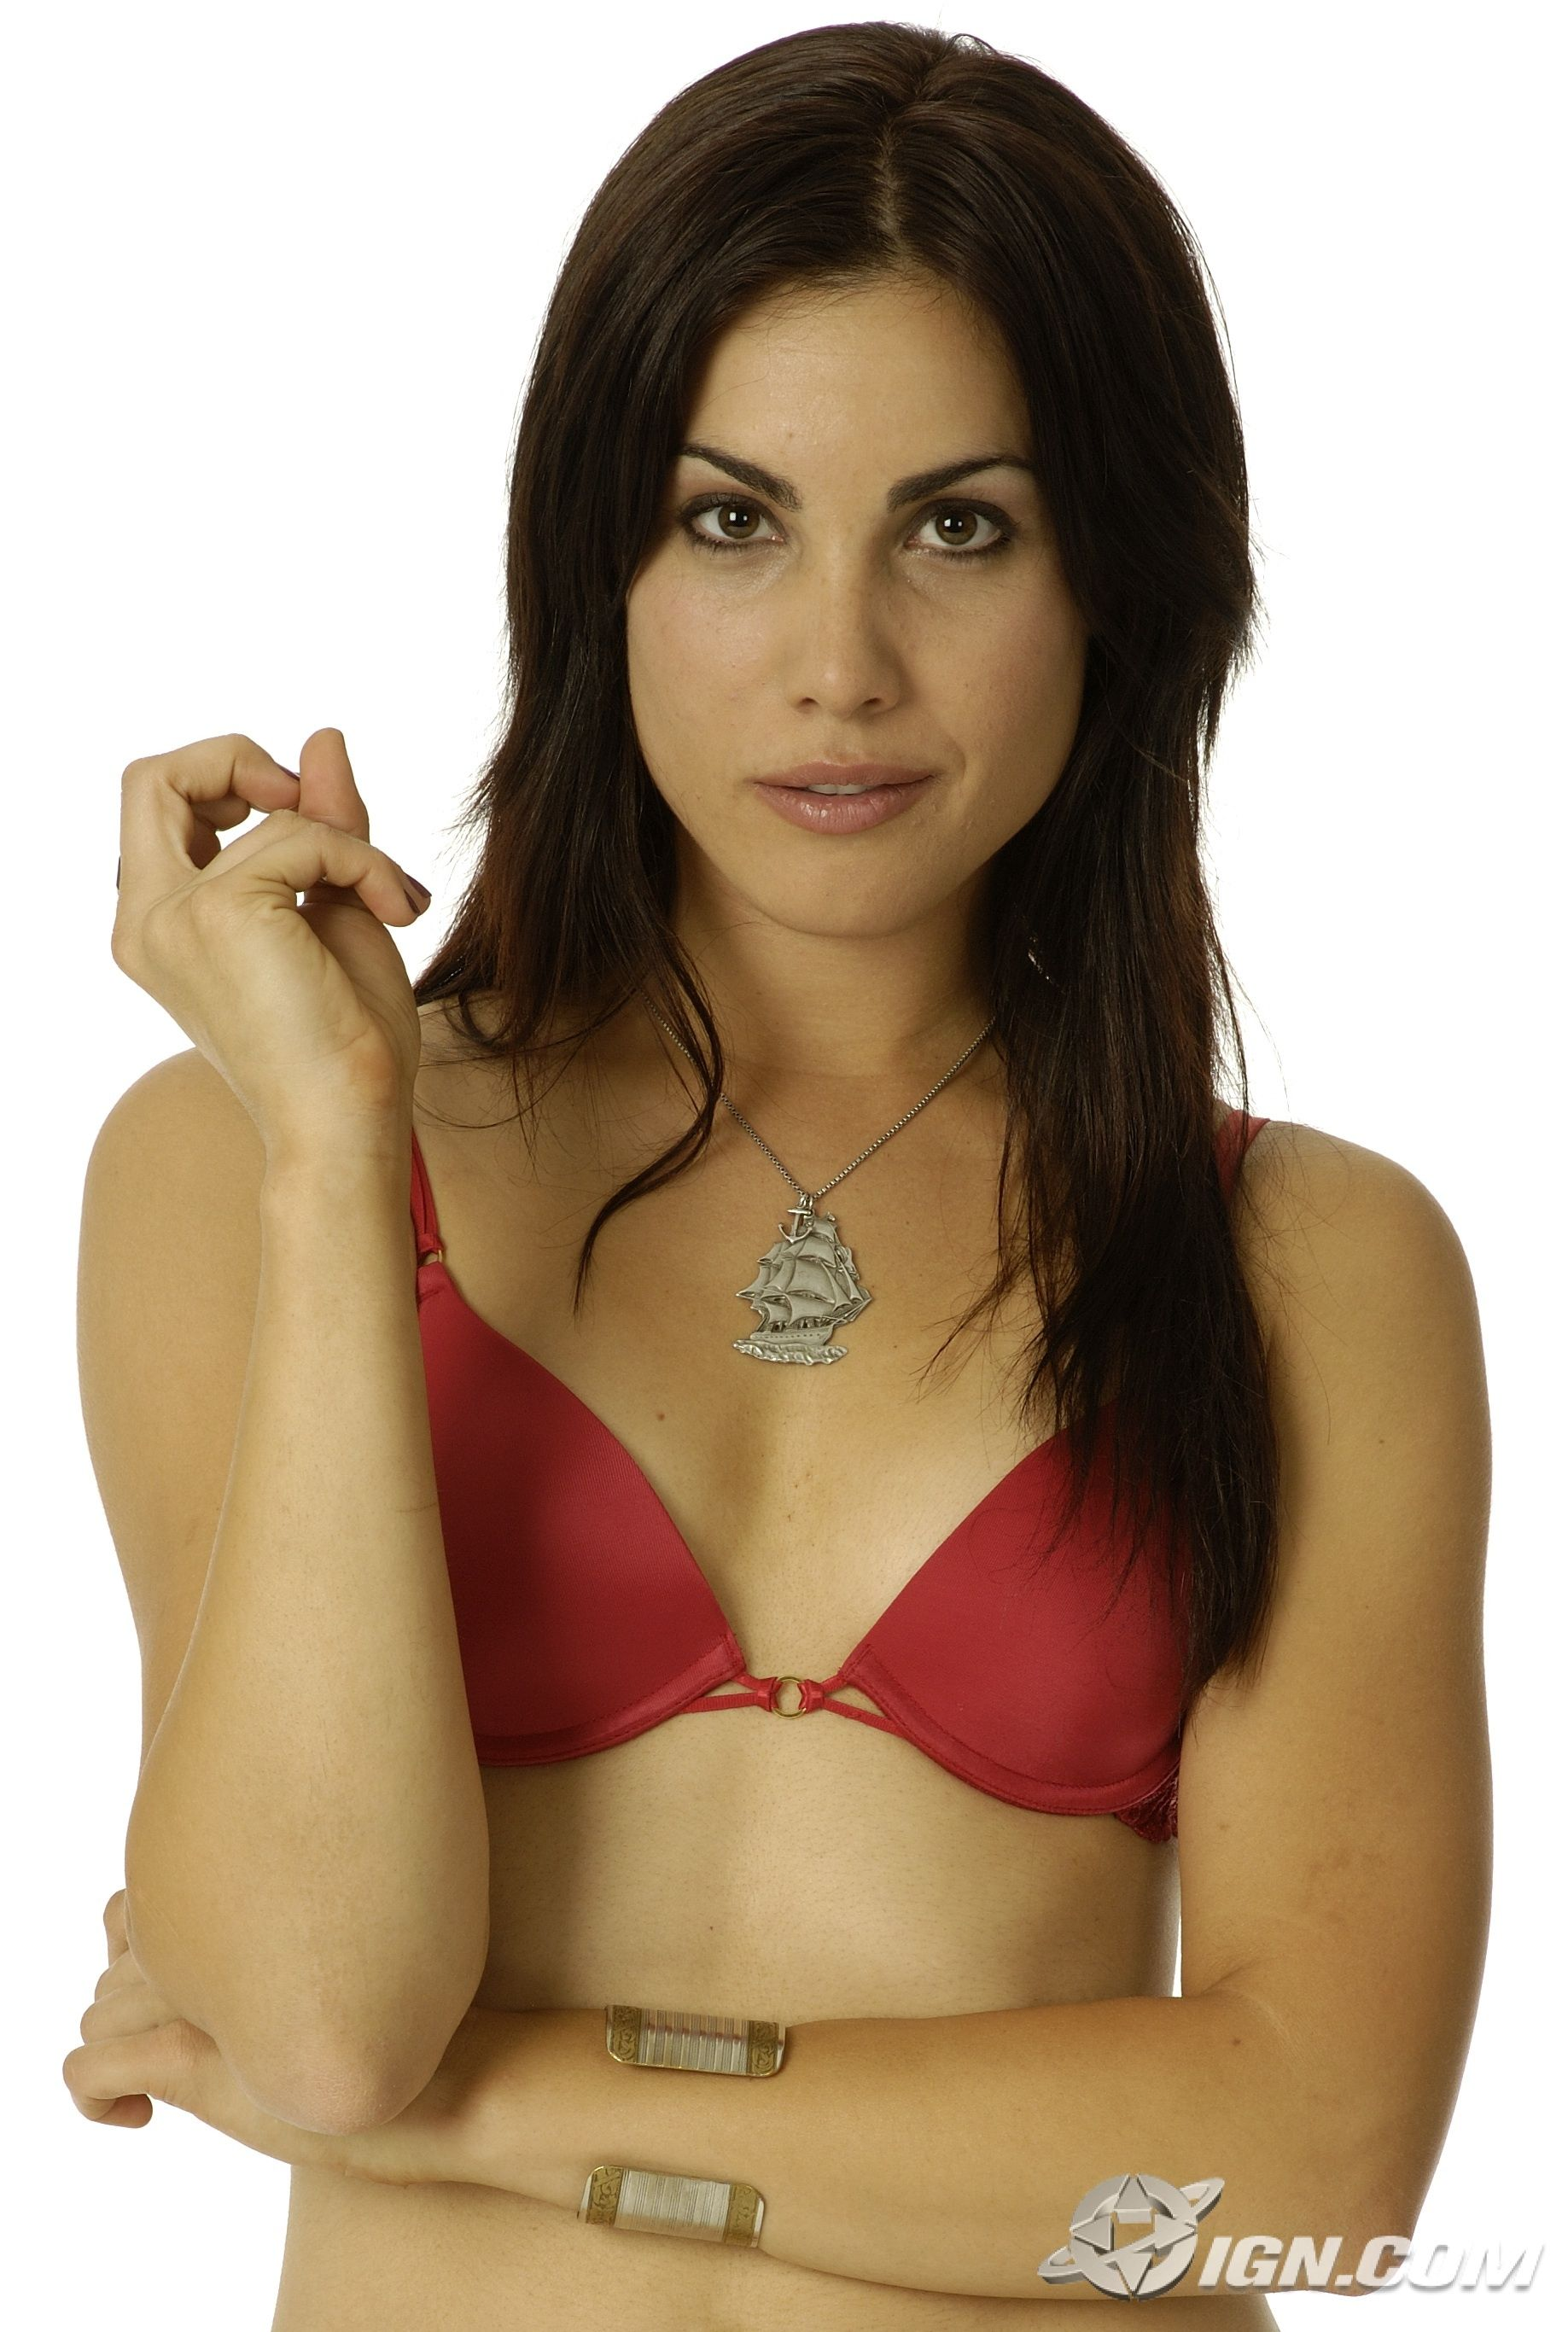 Actress carly pope nude private pics suits star showed pussy tits nude (74 pictures)